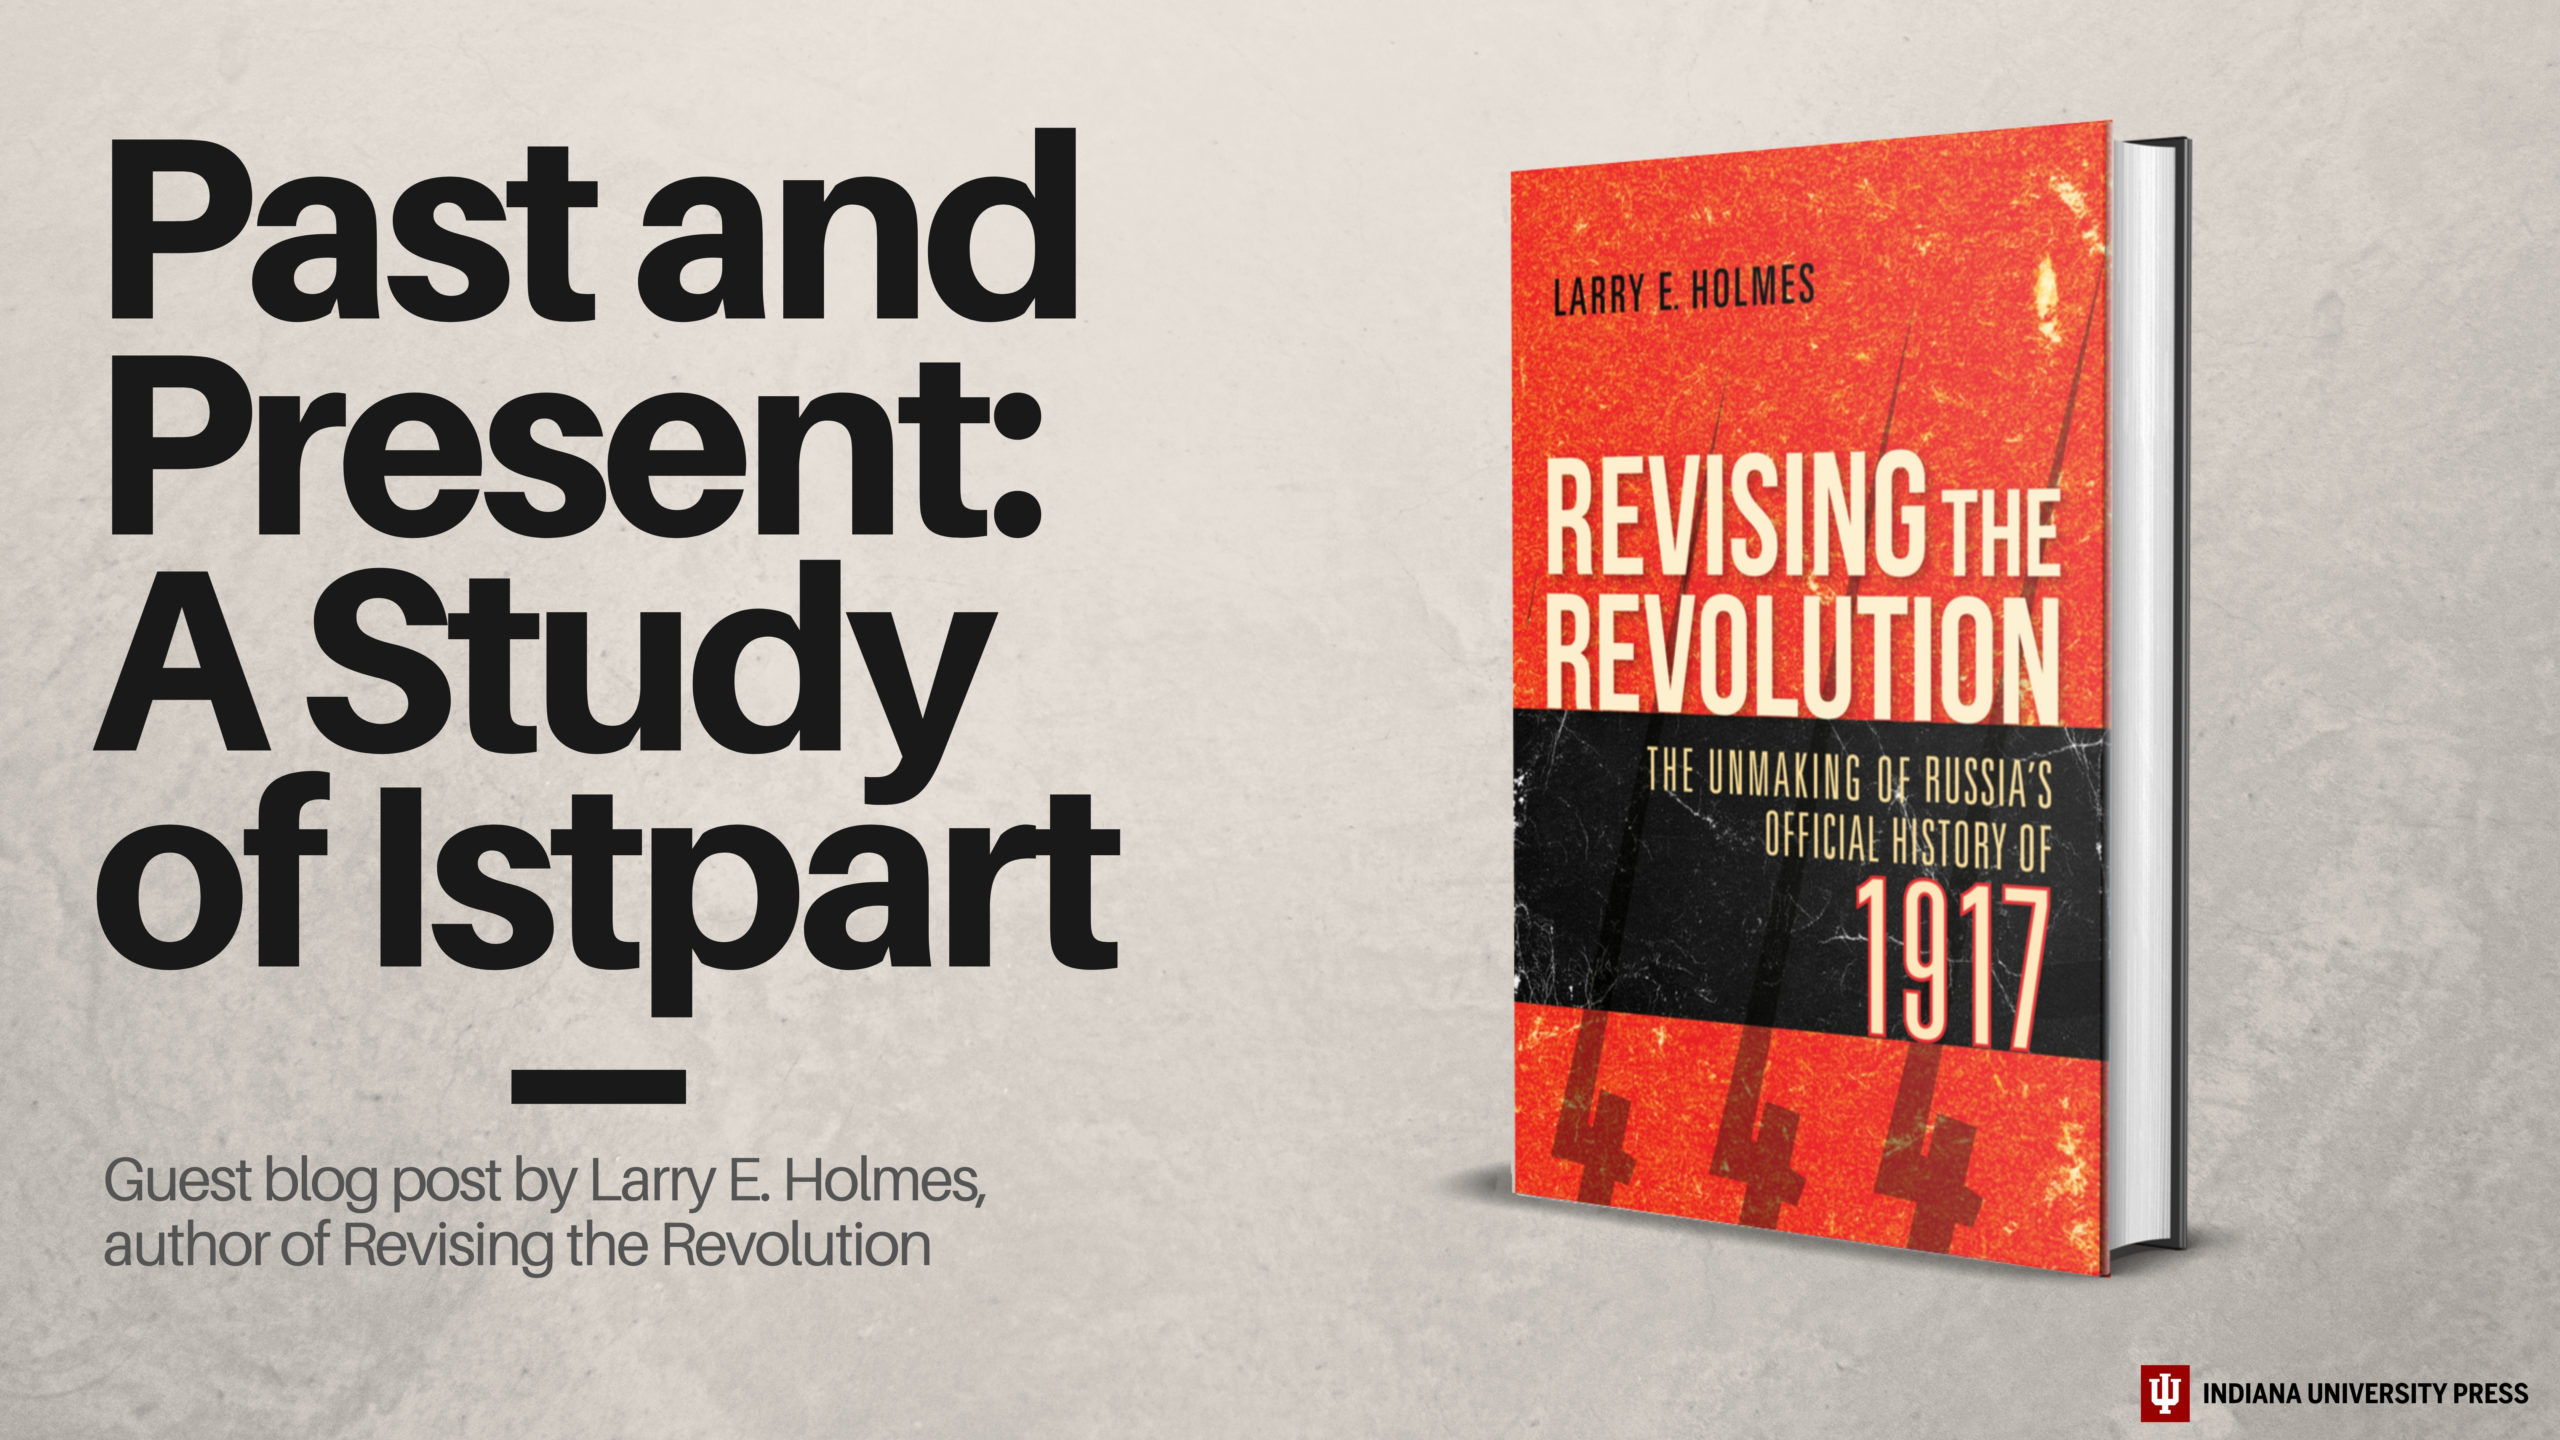 Past and Present - A Study of Istpart. A blog post about Revising the Revolution.